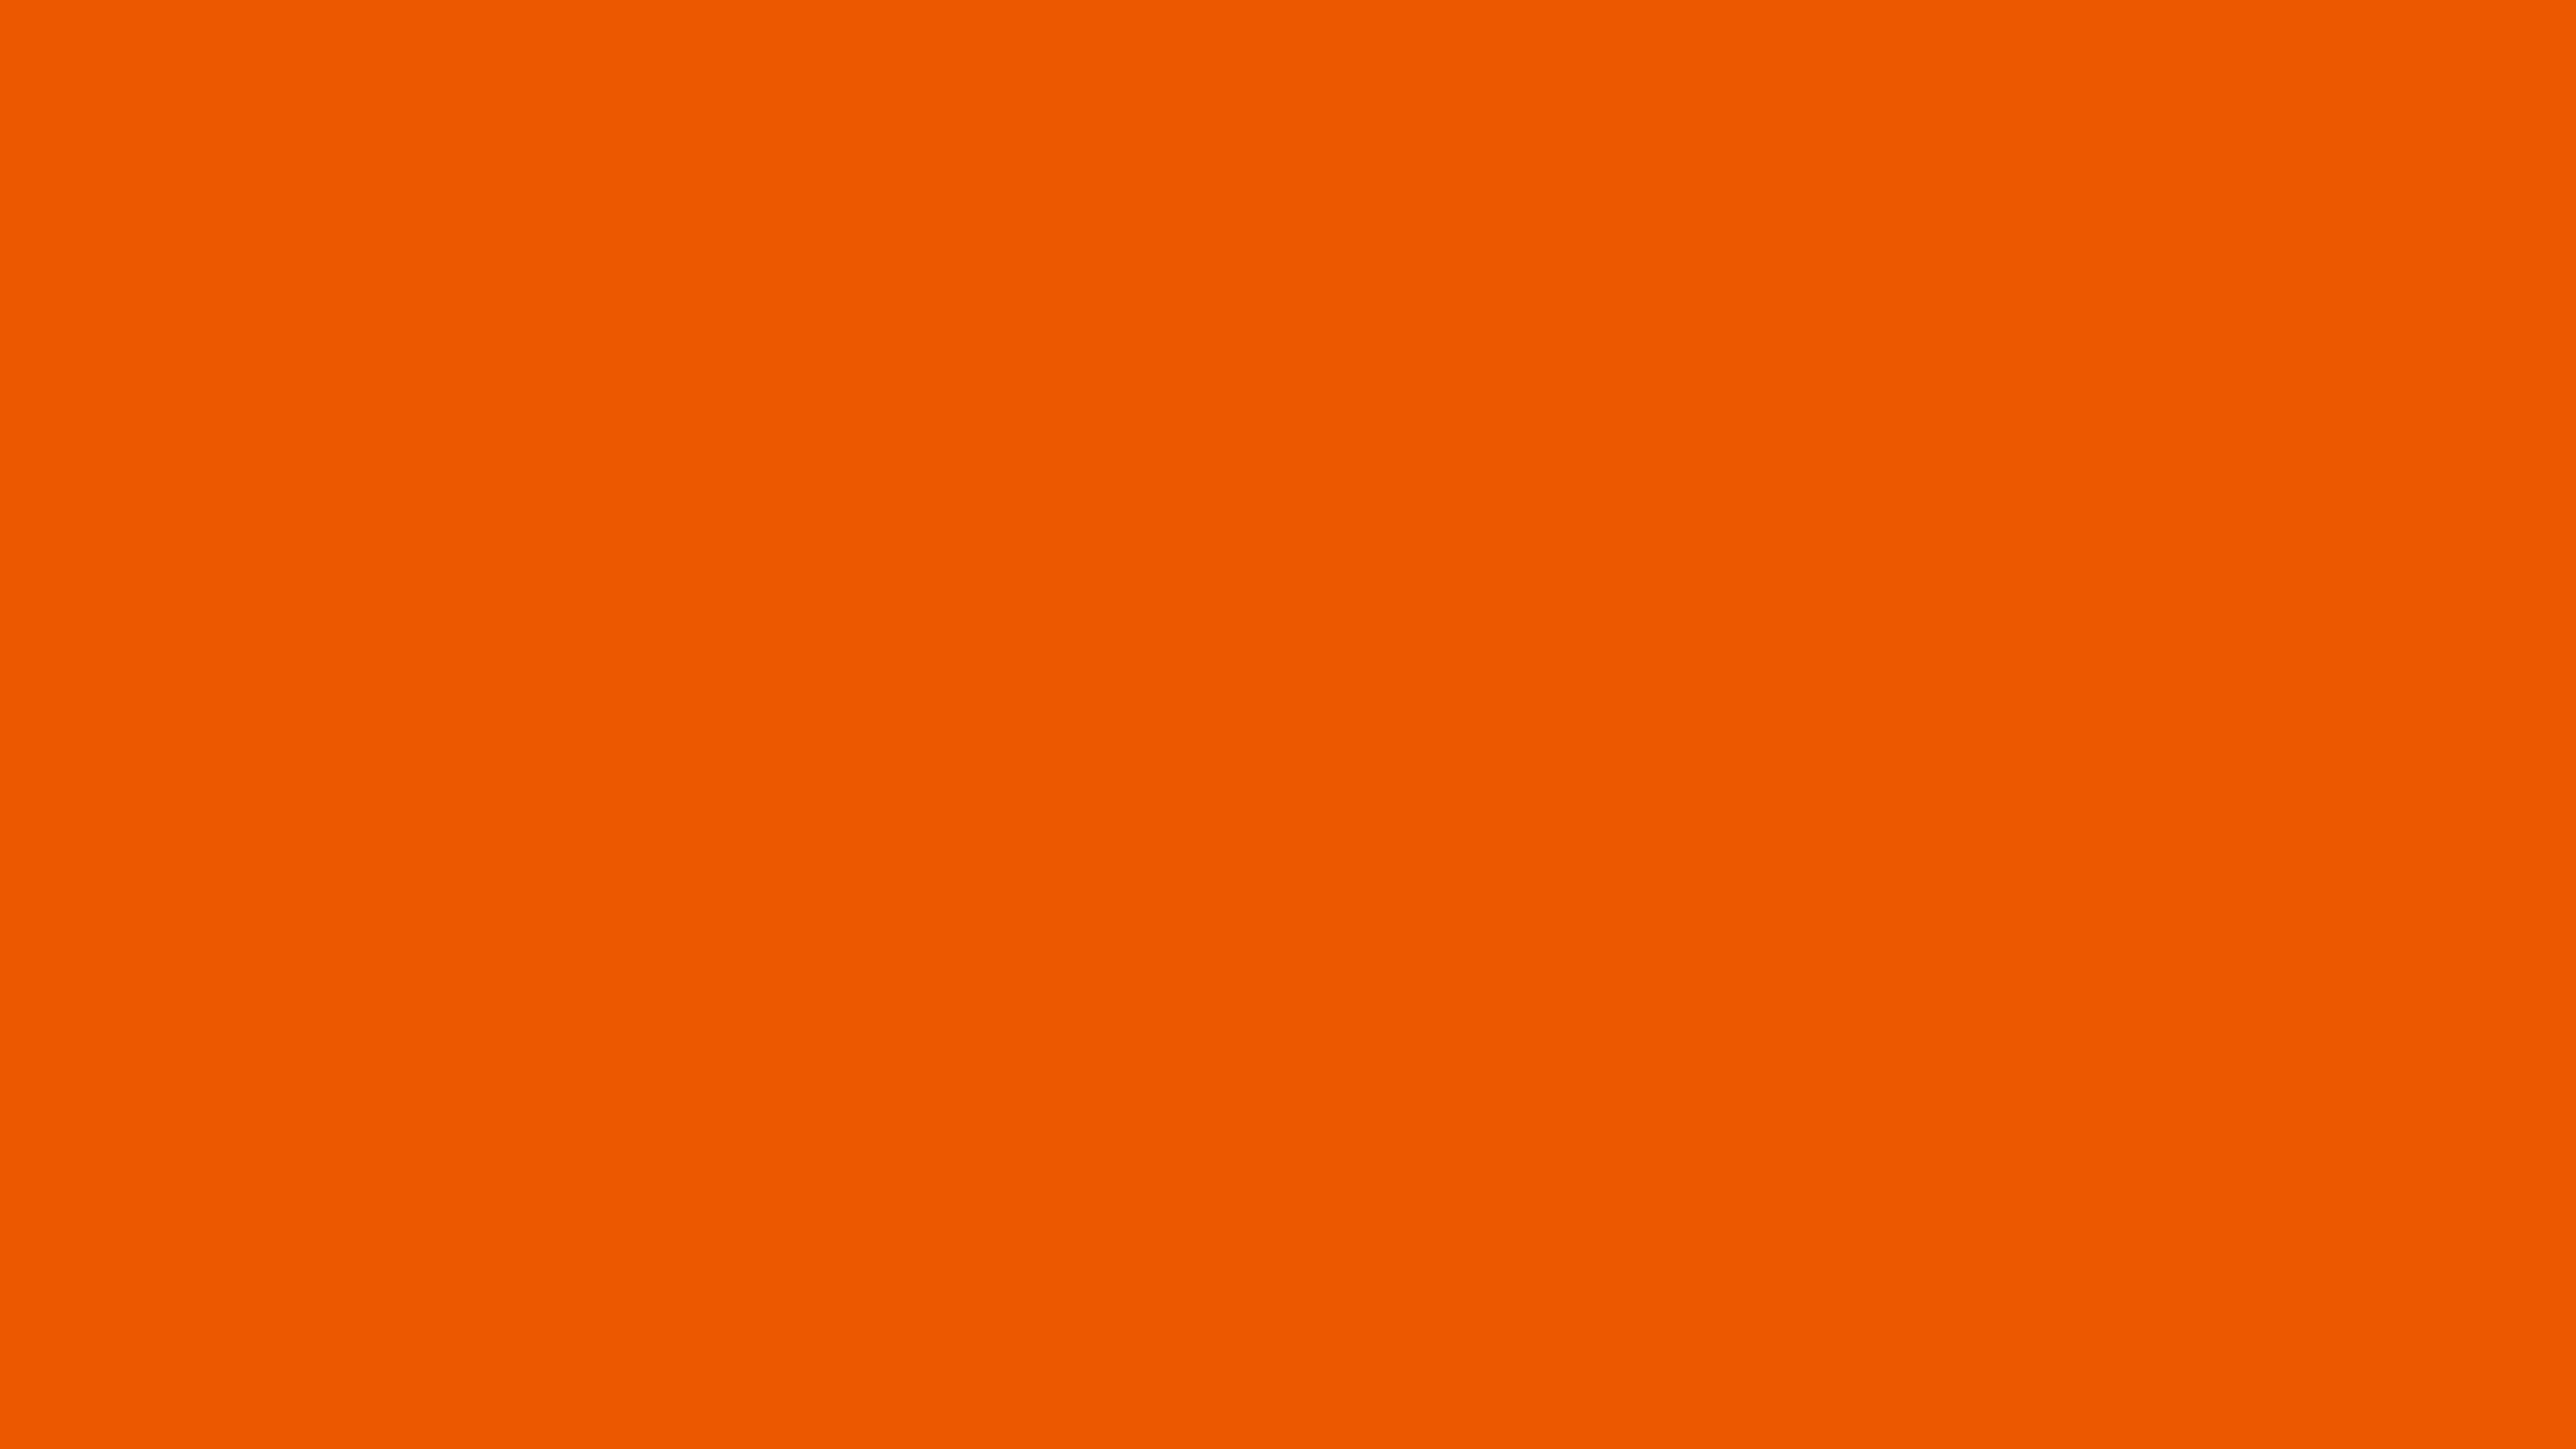 3840x2160 Persimmon Solid Color Background